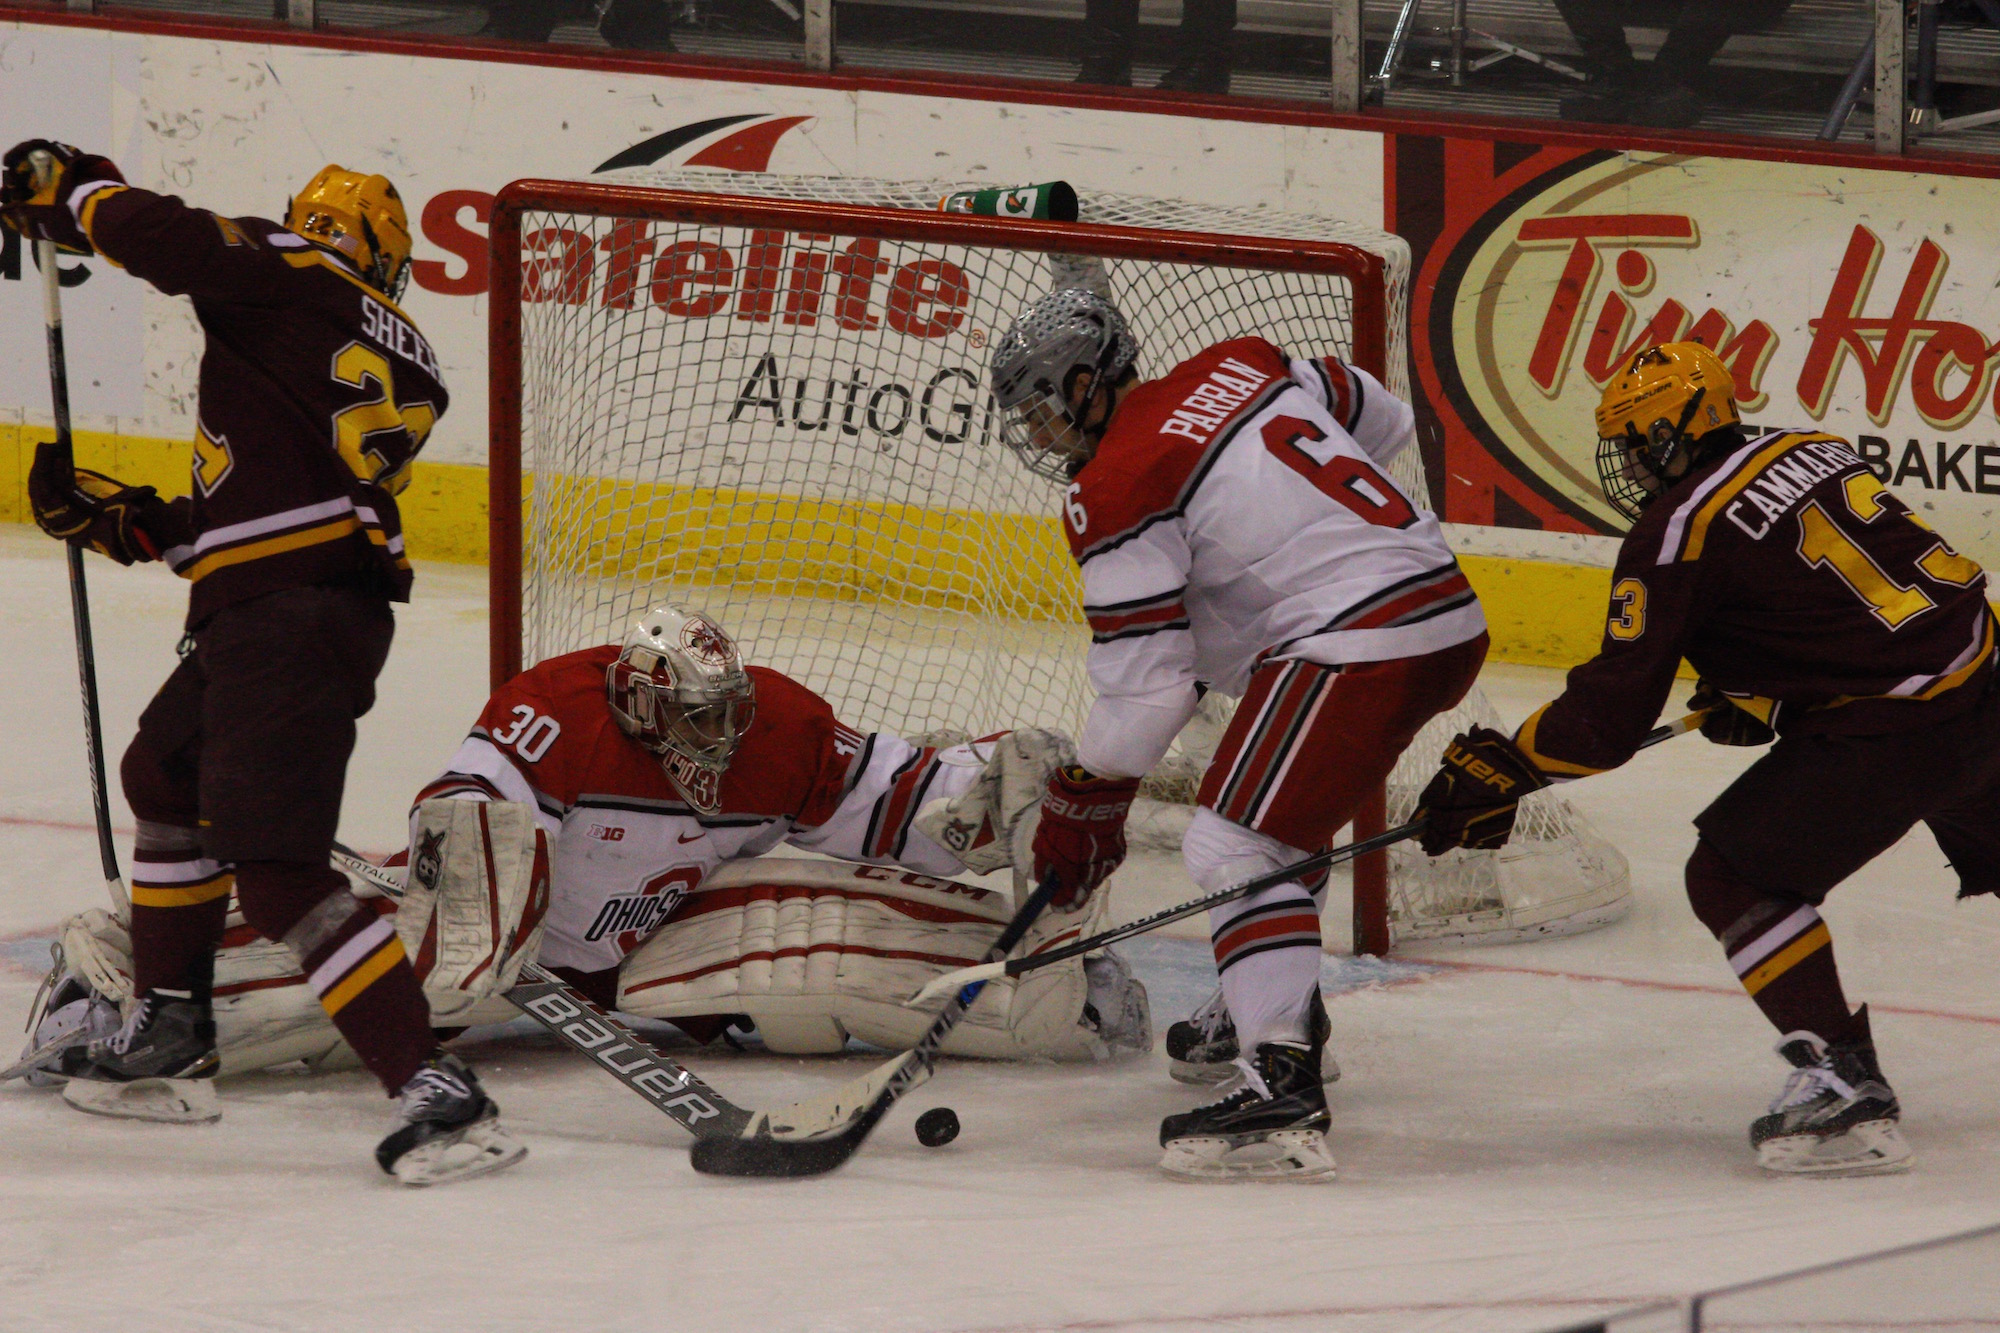 OSU forward Tommy Parran (6) tries to clear the puck in front of the Buckeyes' goal in a game against Minnesota on Feb. 12 at the Schottenstein Center. OSU lost, 5-4. Credit: Evan Szymkowicz | Sports Director